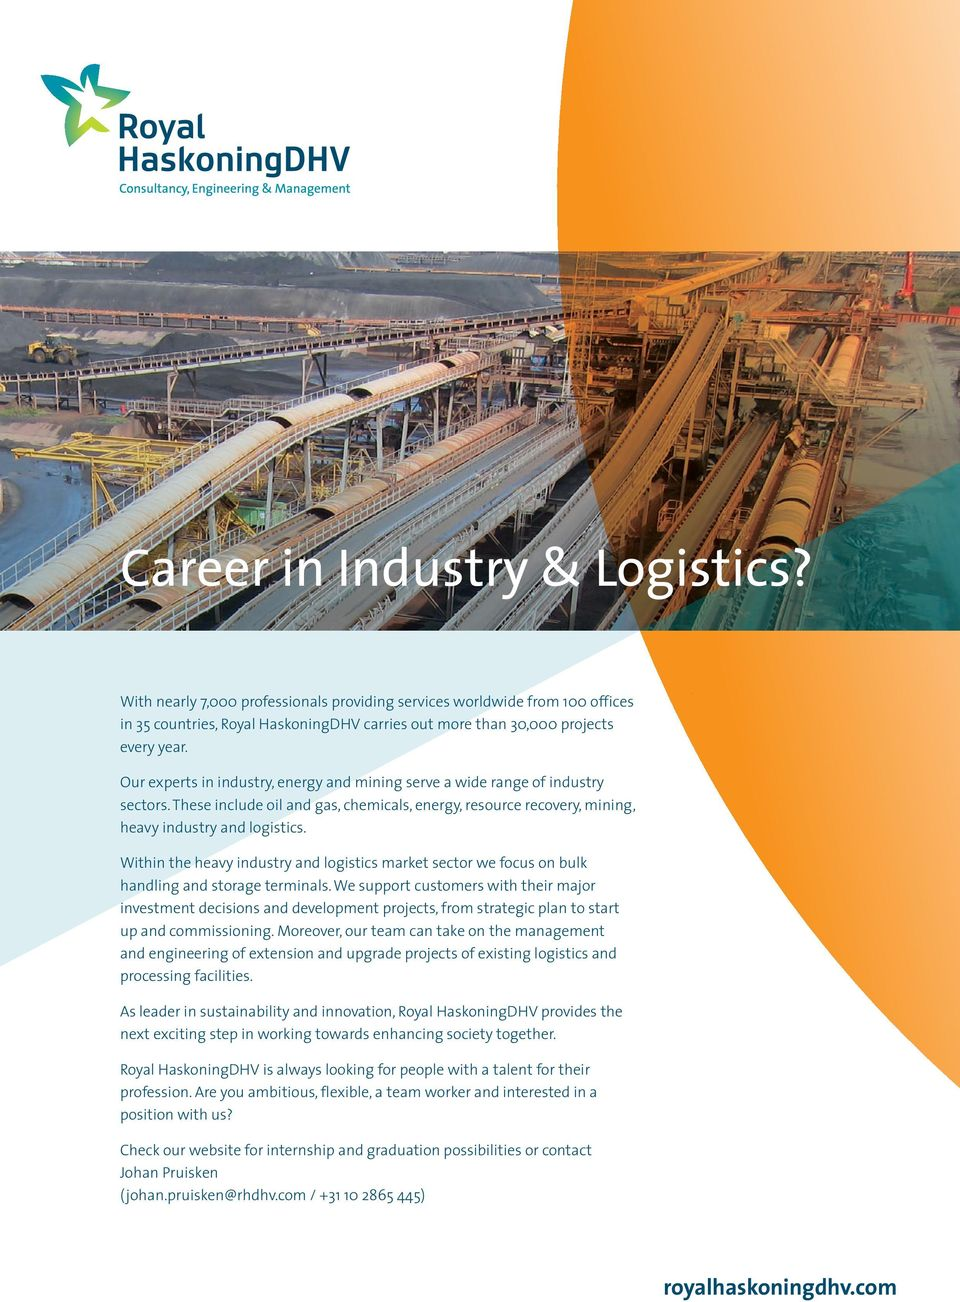 Within the heavy industry and logistics market sector we focus on bulk handling and storage terminals.